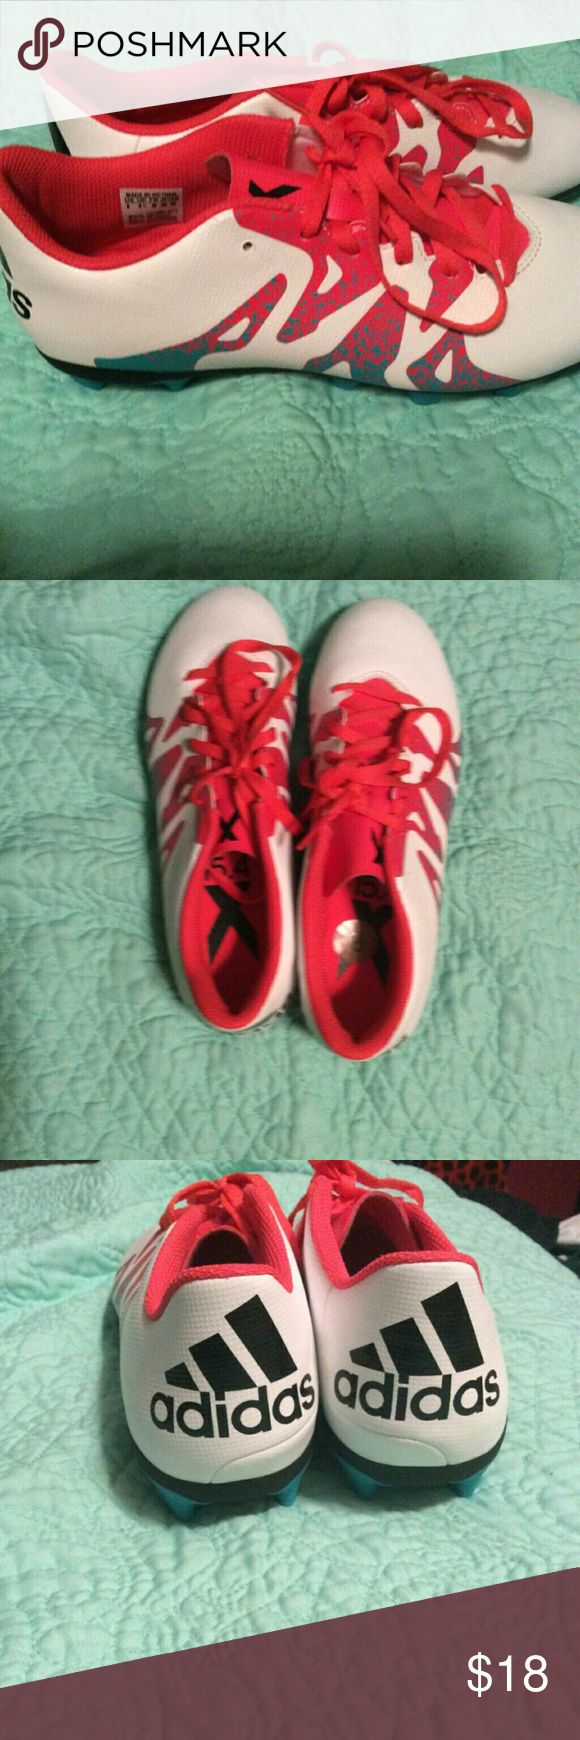 NWT ADIDAS SOCCER CLEATS The reason why it's is under NWT is because I just took the tag of yesterday and then I realized I could not return them. The are a pink/red/blue color neon. Adidas Shoes Athletic Shoes